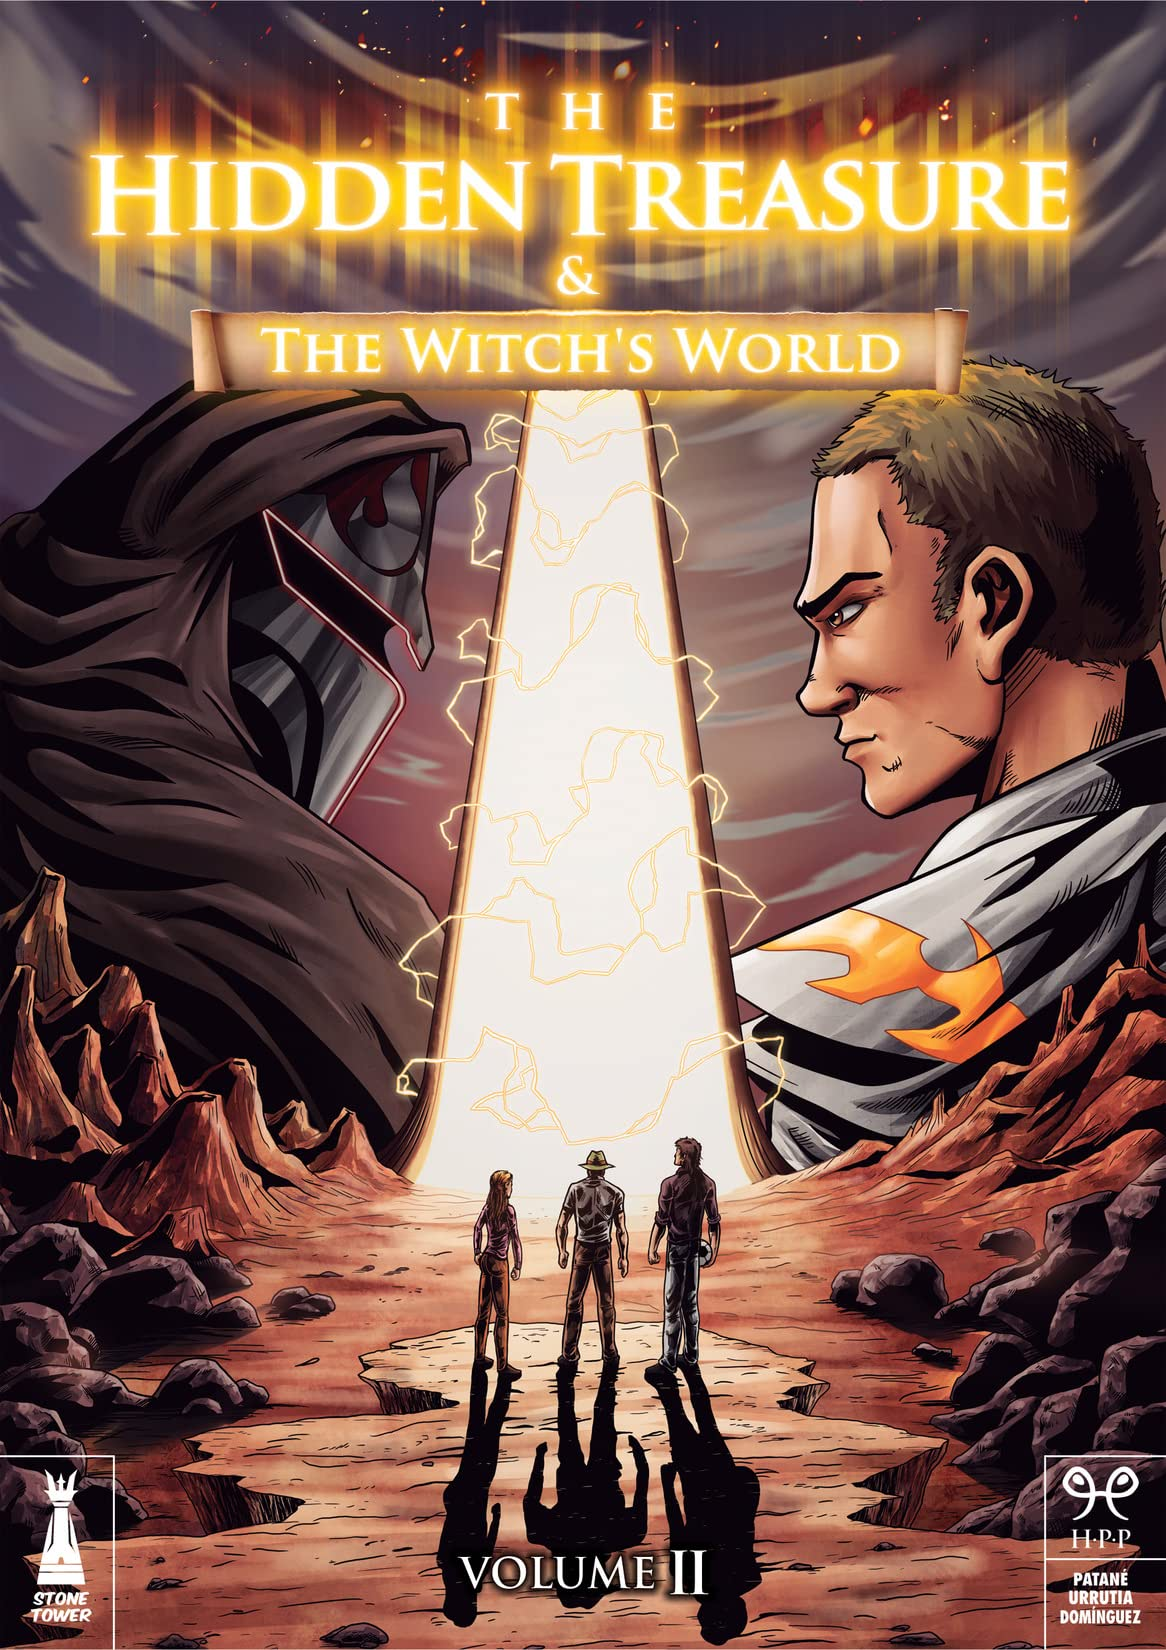 The Hidden Treasure & The Witch's World #2